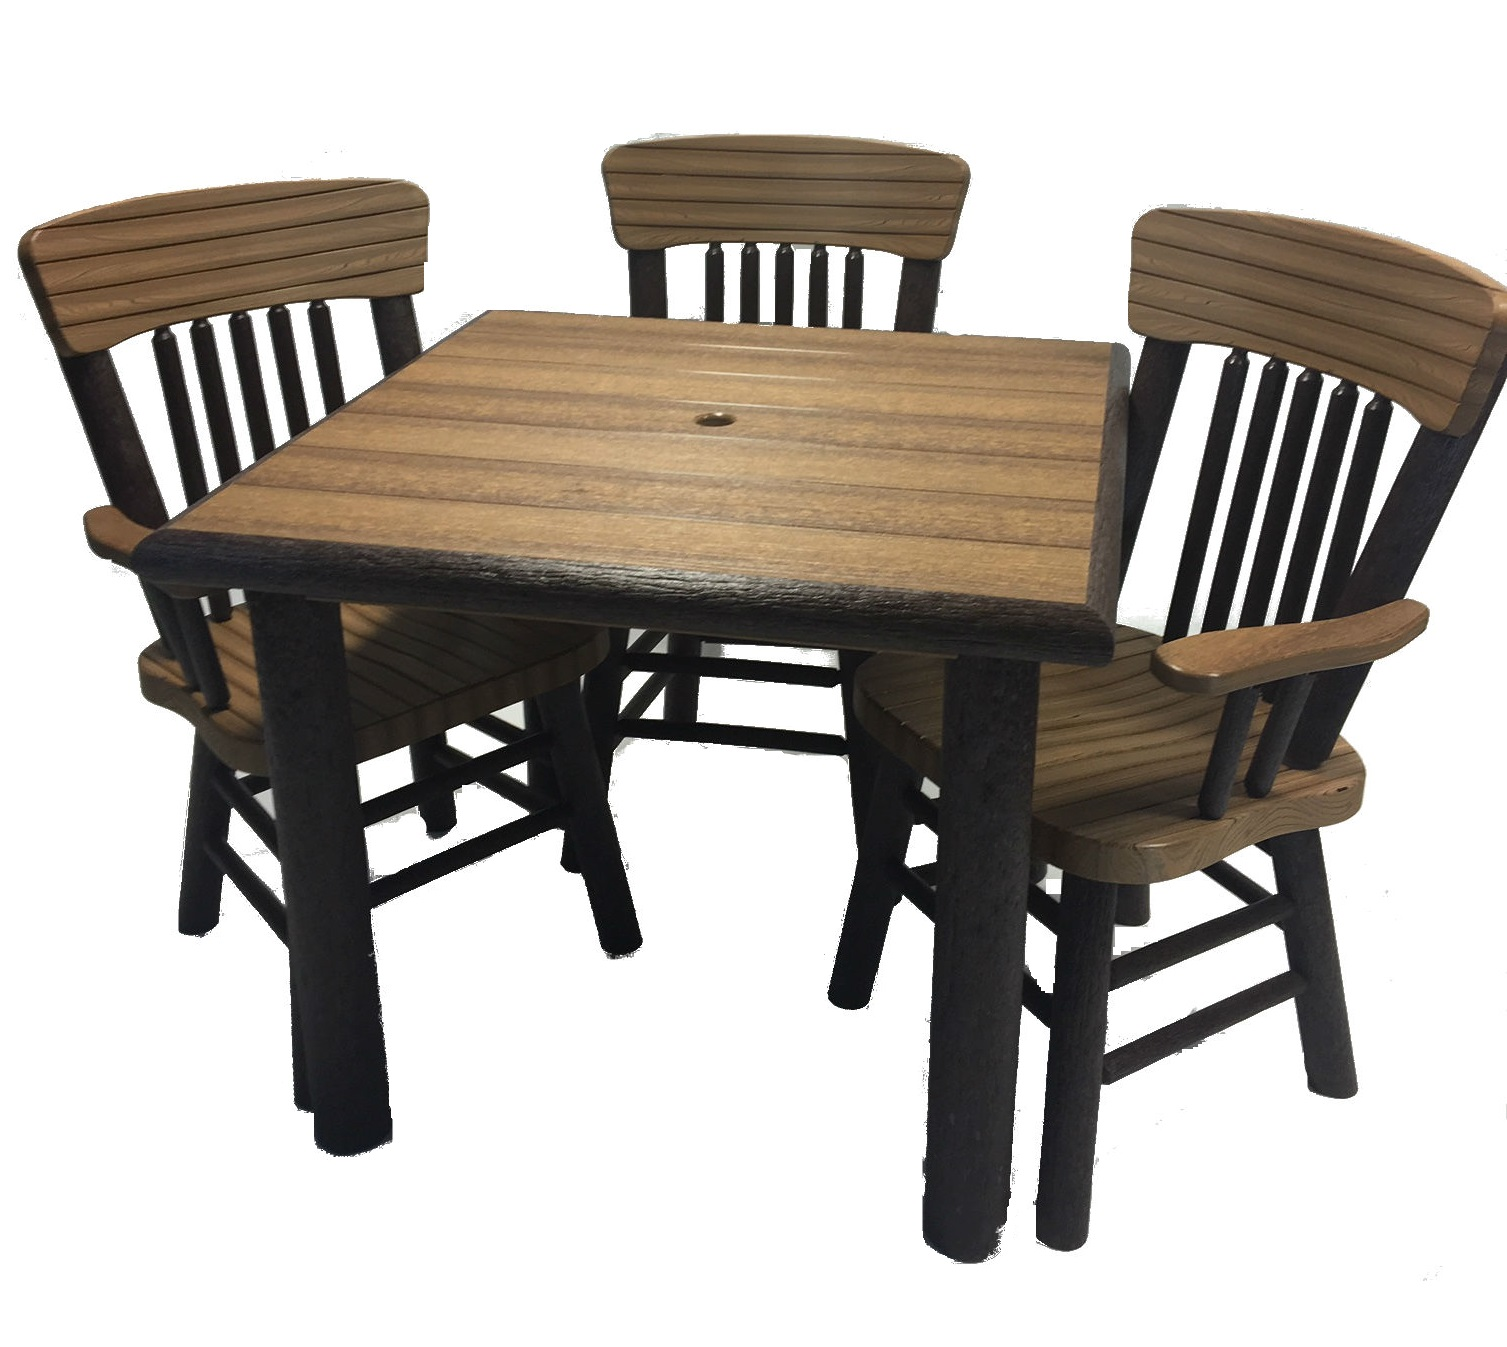 Great Woods Rustic Dining Height Table and Chairs